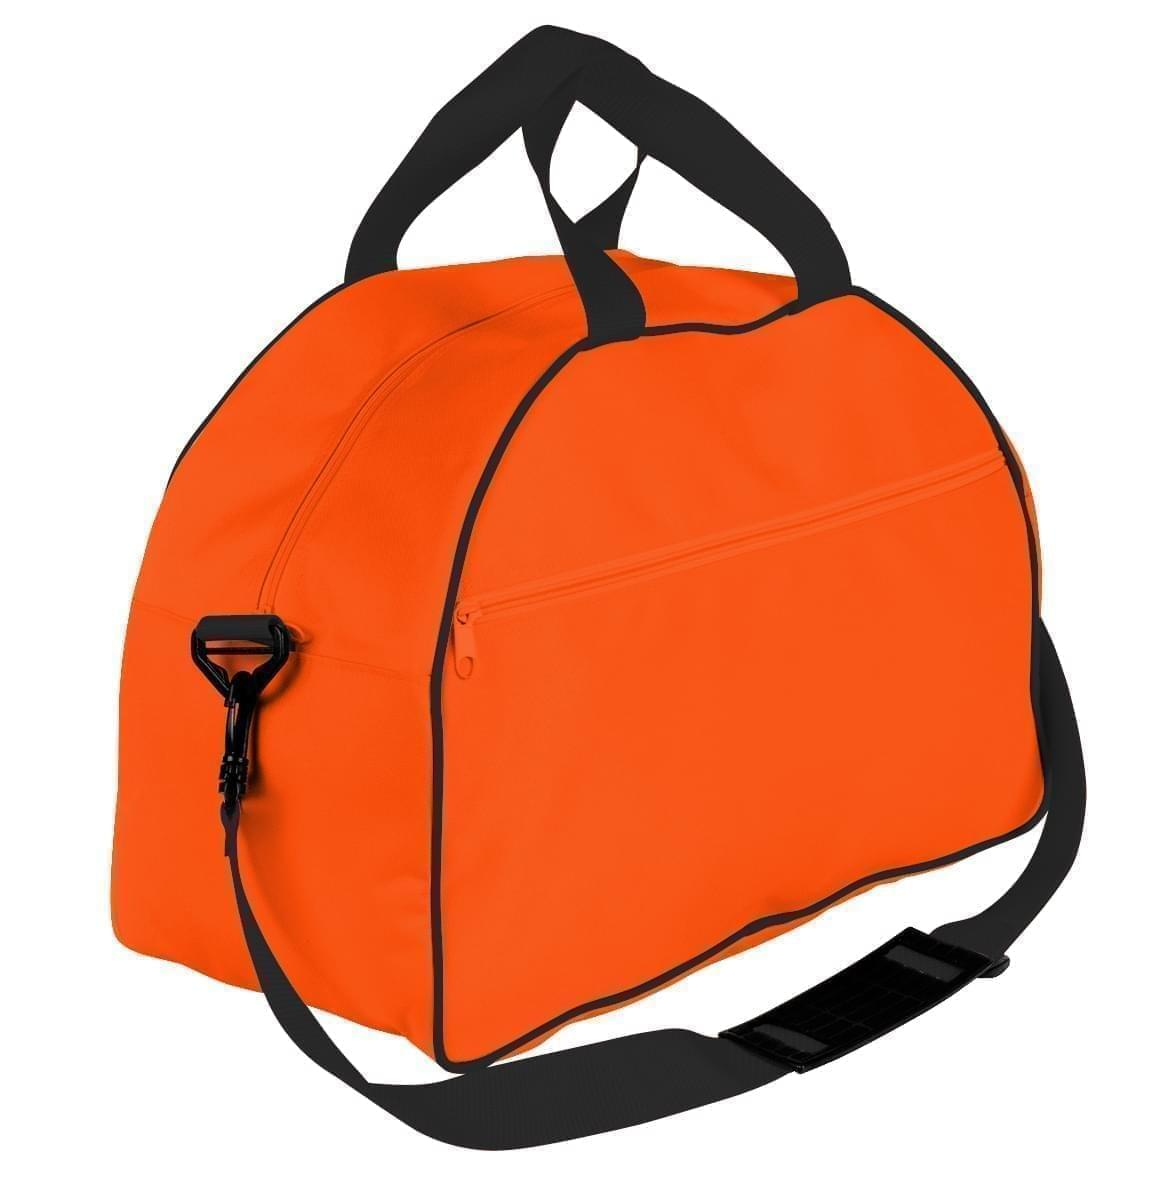 USA Made Nylon Poly Weekender Duffel Bags, Orange-Black, 6PKV32JAXR